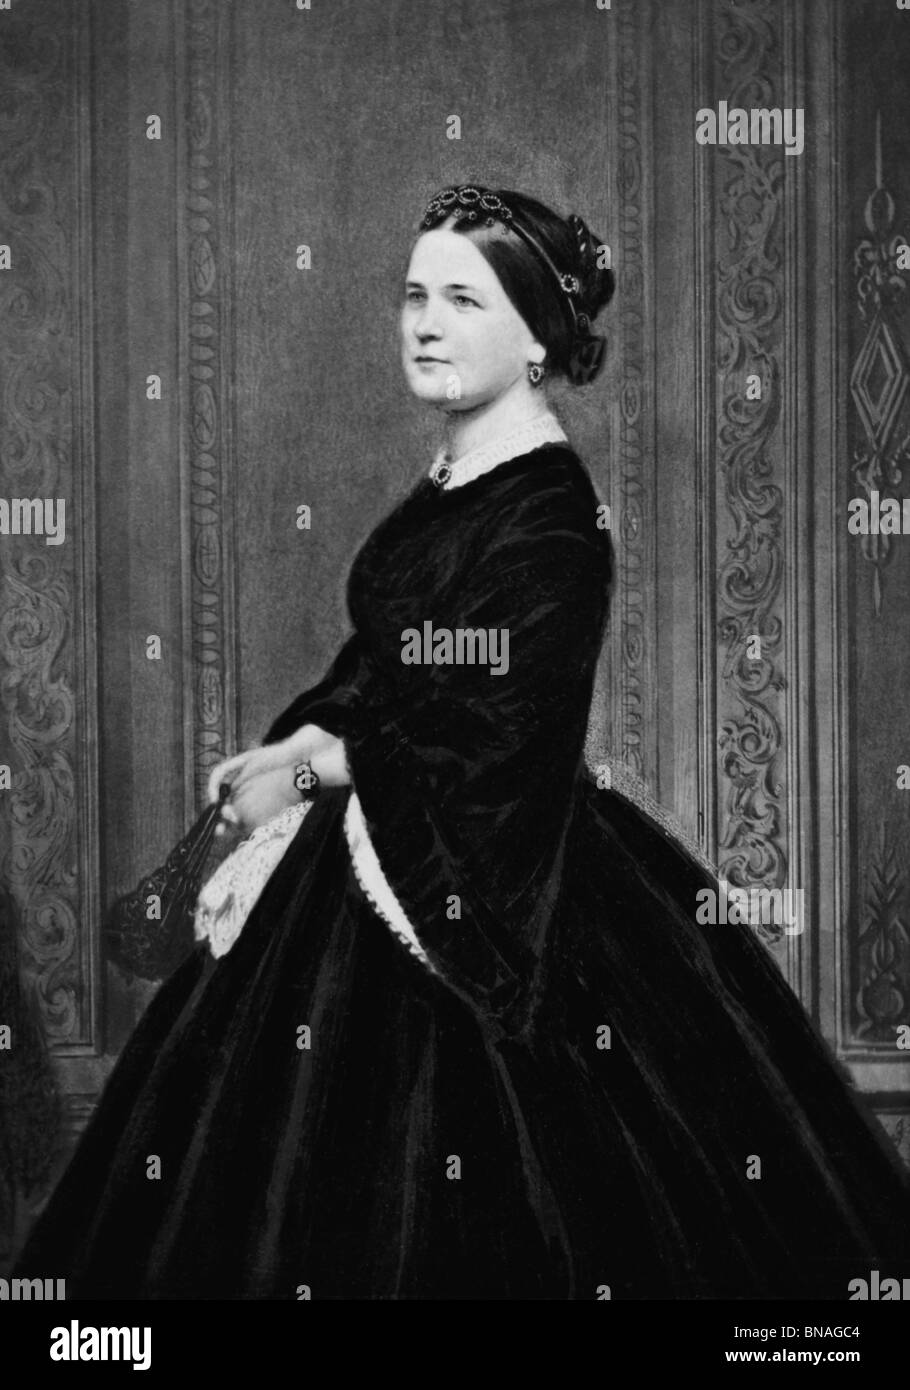 Portrait photo c1860s of Mary Todd Lincoln (1818 - 1882) - wife of US President Abraham Lincoln + First Lady from - Stock Image